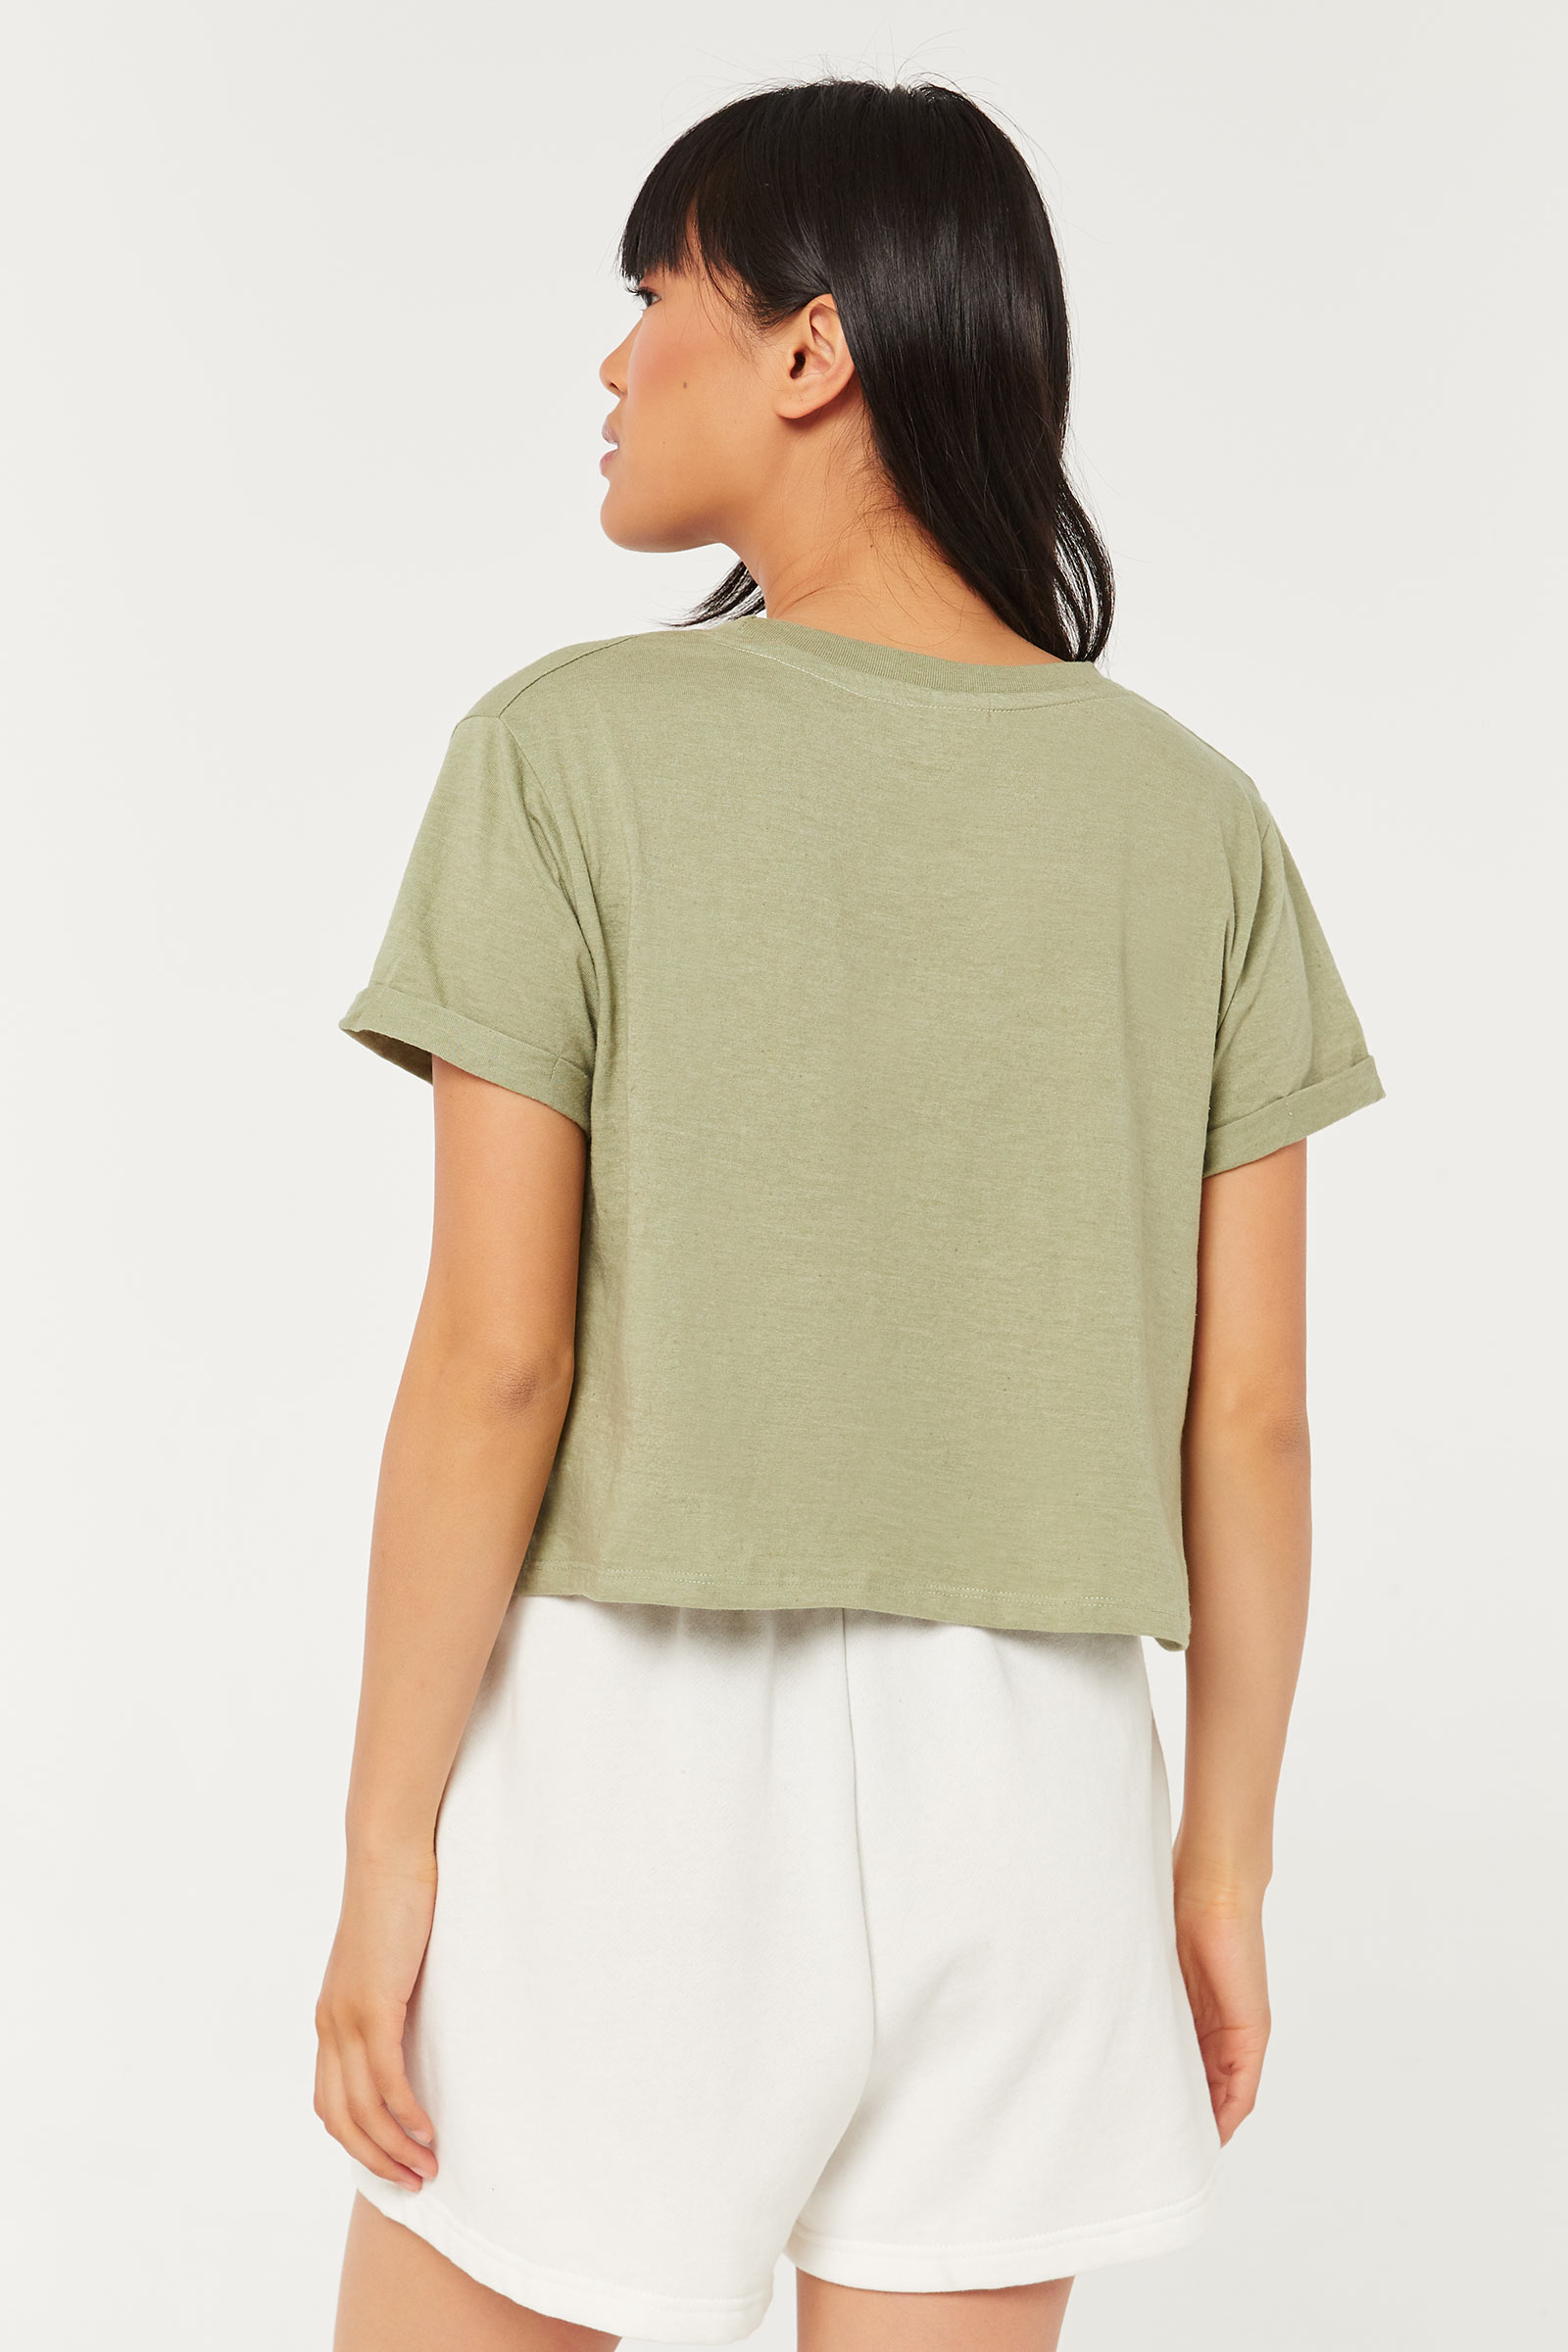 Recycled Boxy Crop T-shirt